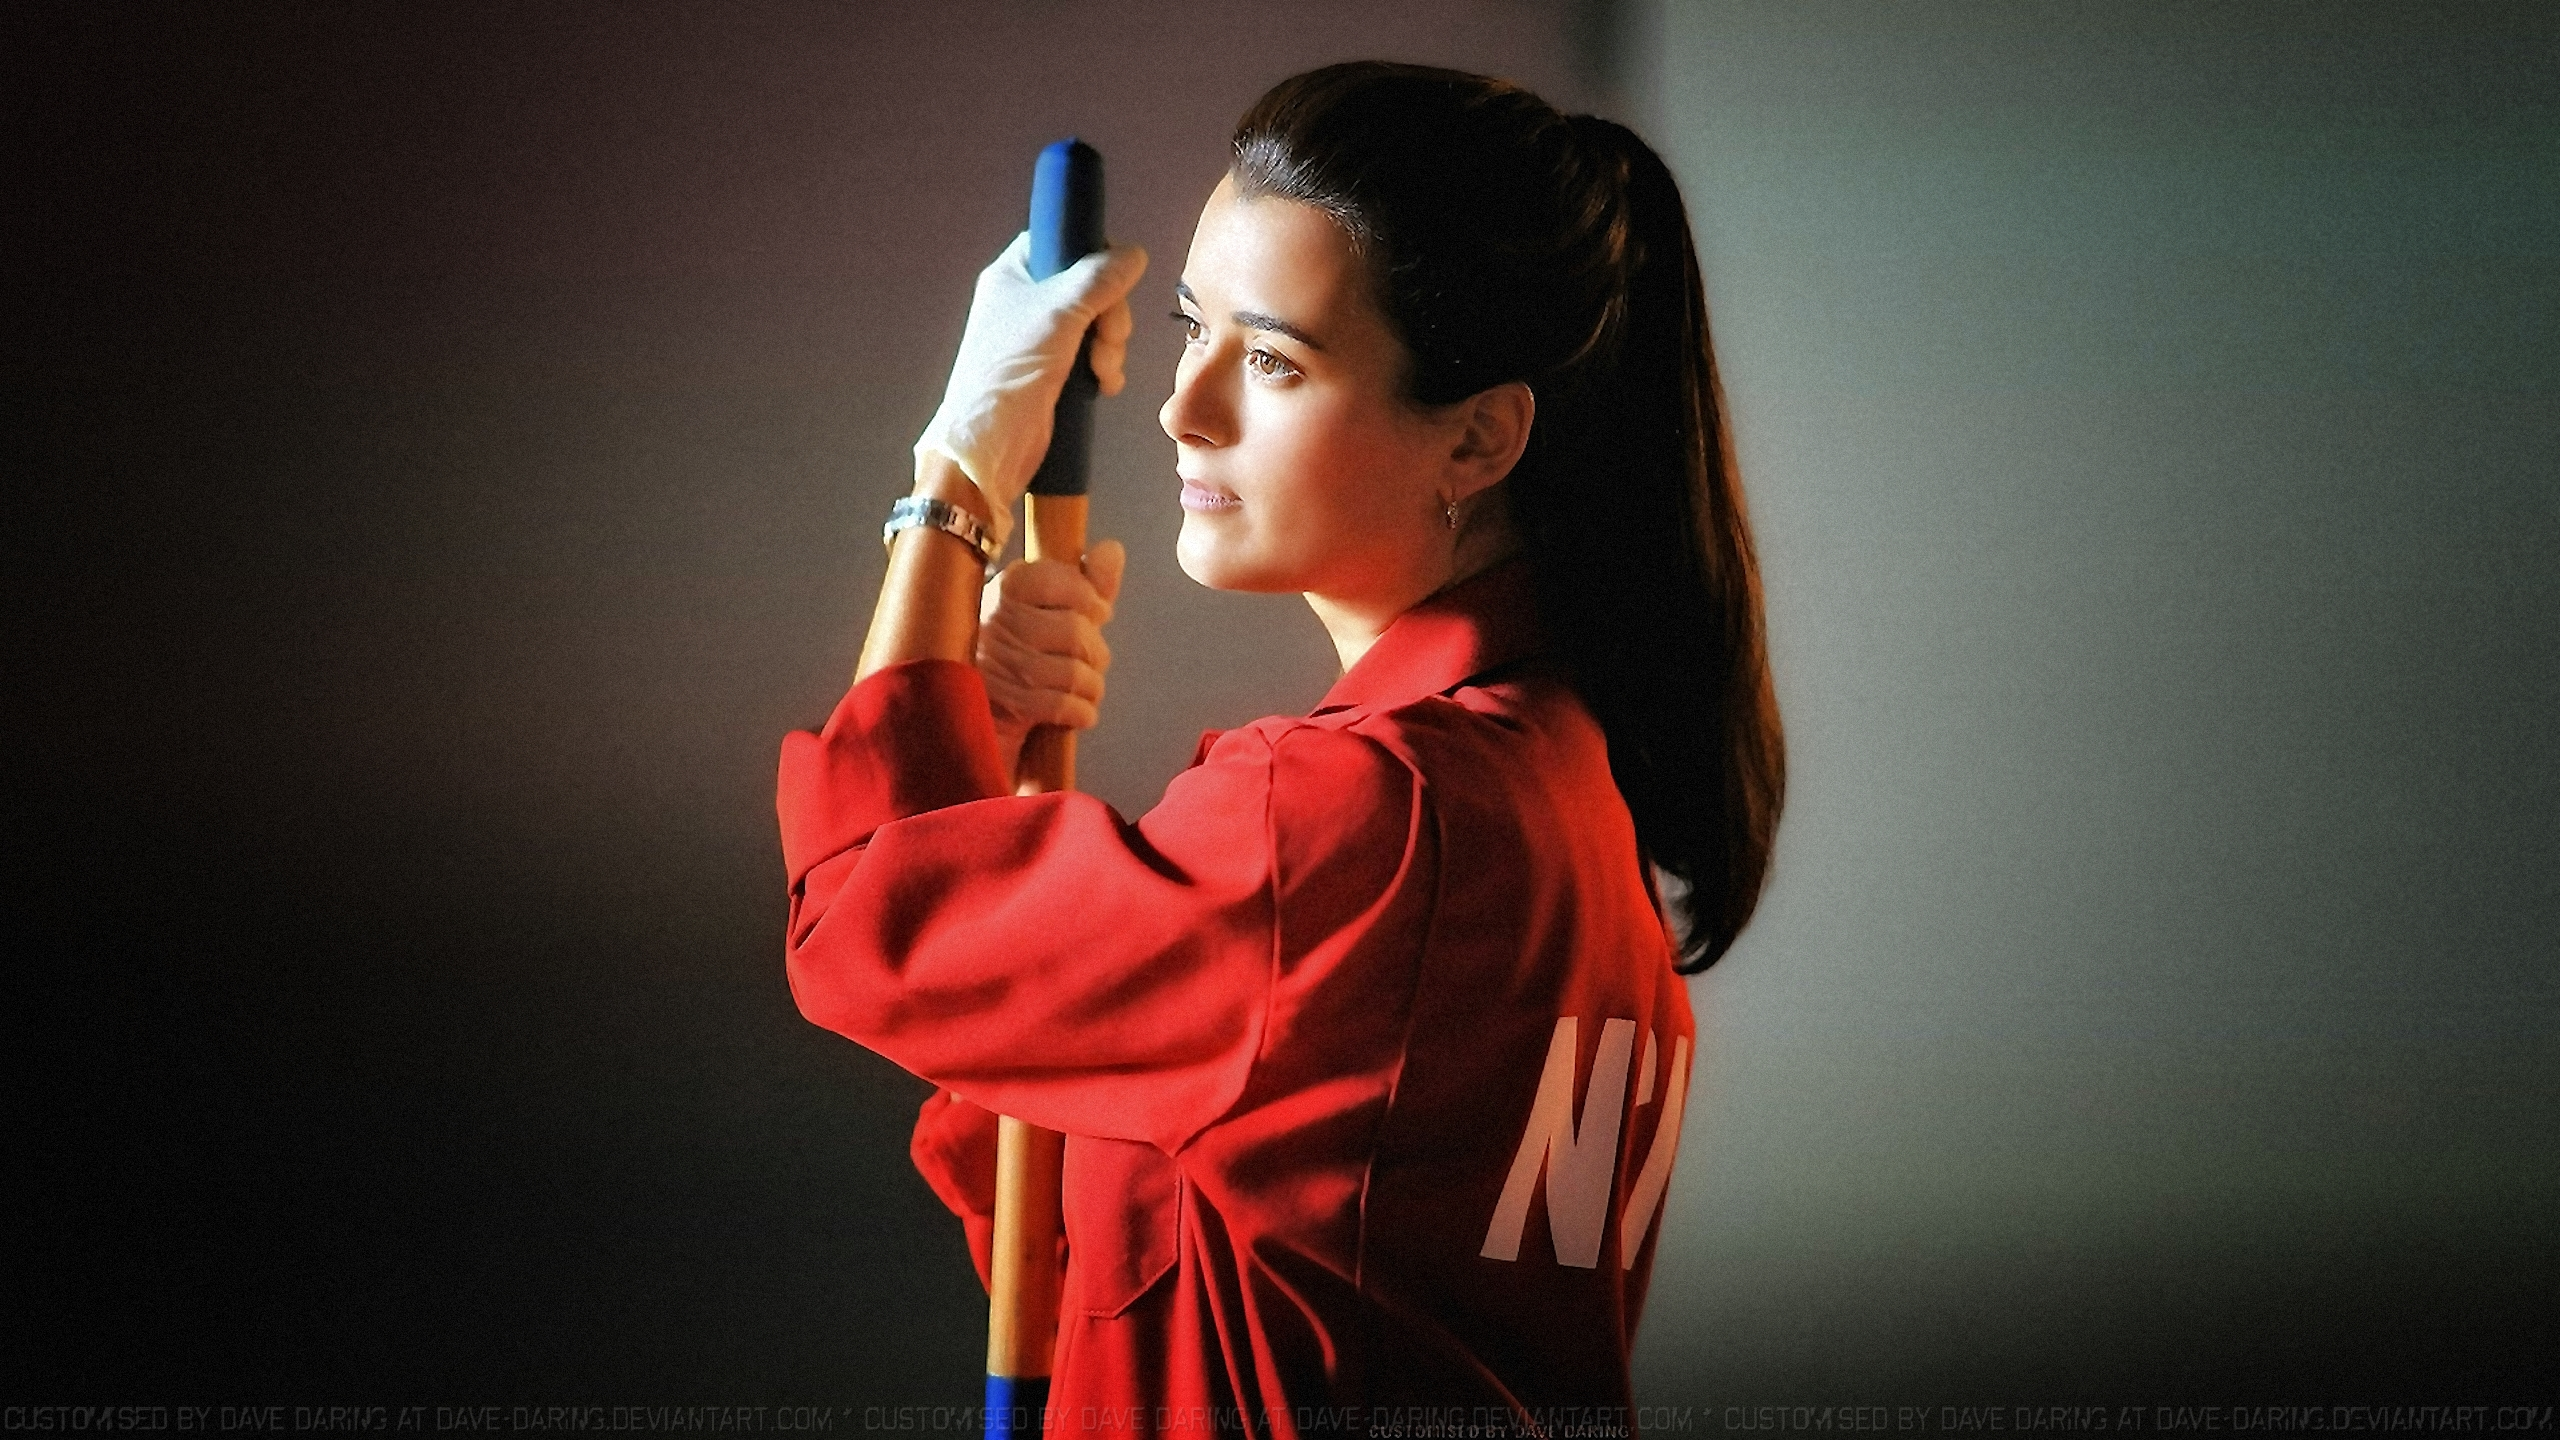 Cote De Pablo Ziva In Ncis Red By Dave Daring On Deviantart